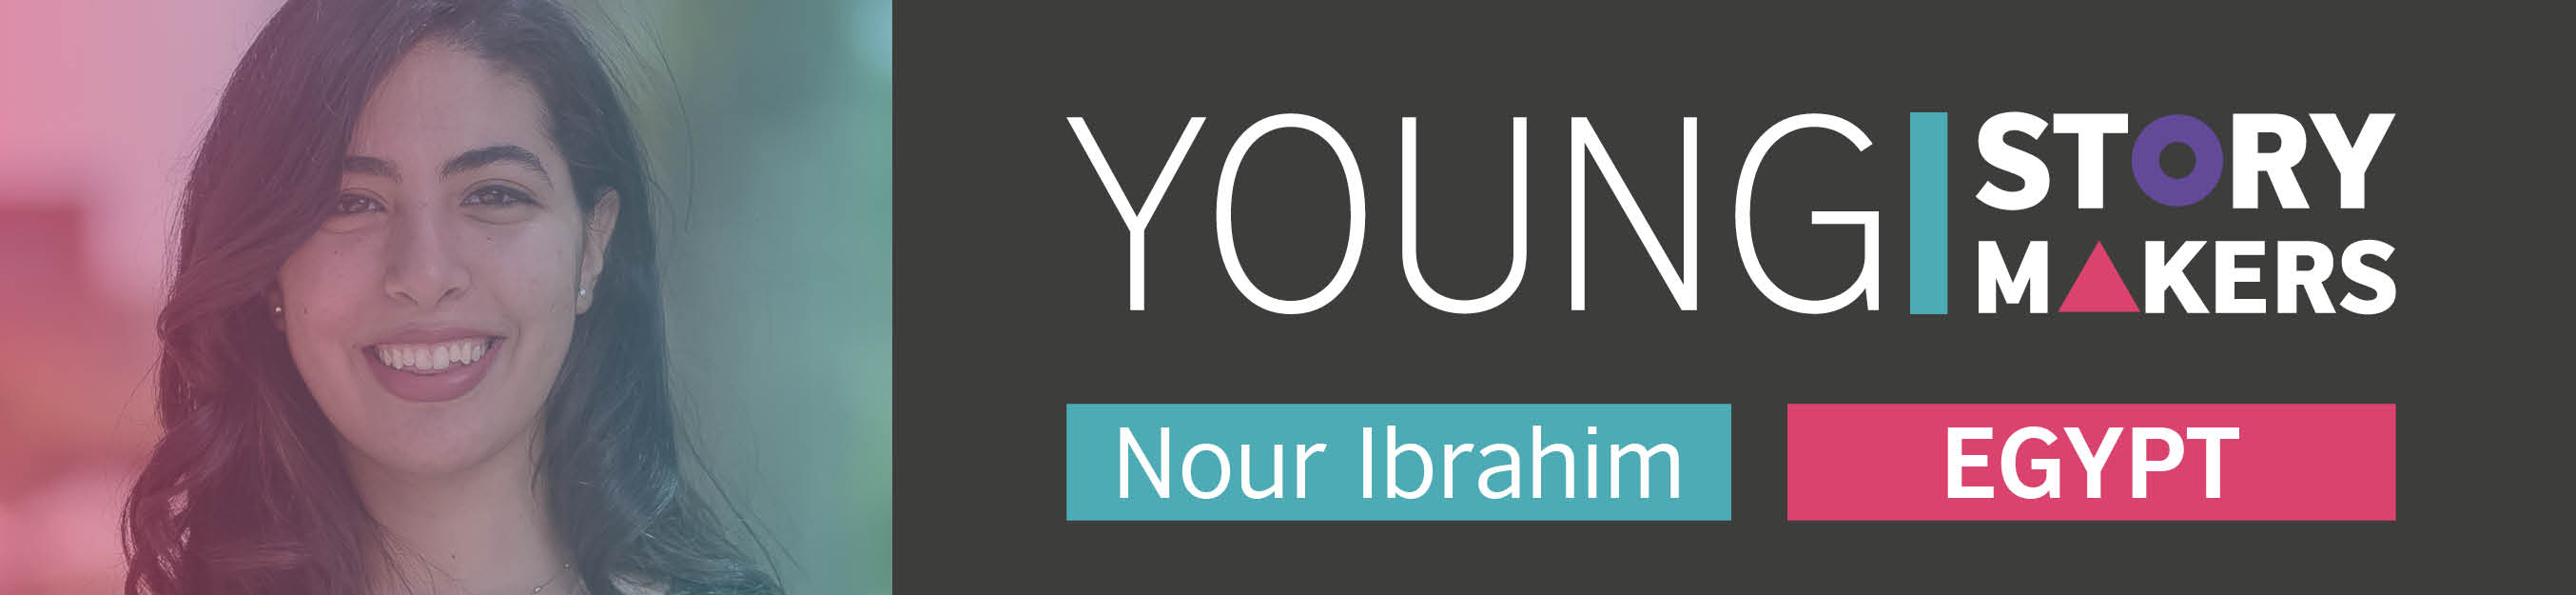 Nour Ibrahim DICE Young Storymaker